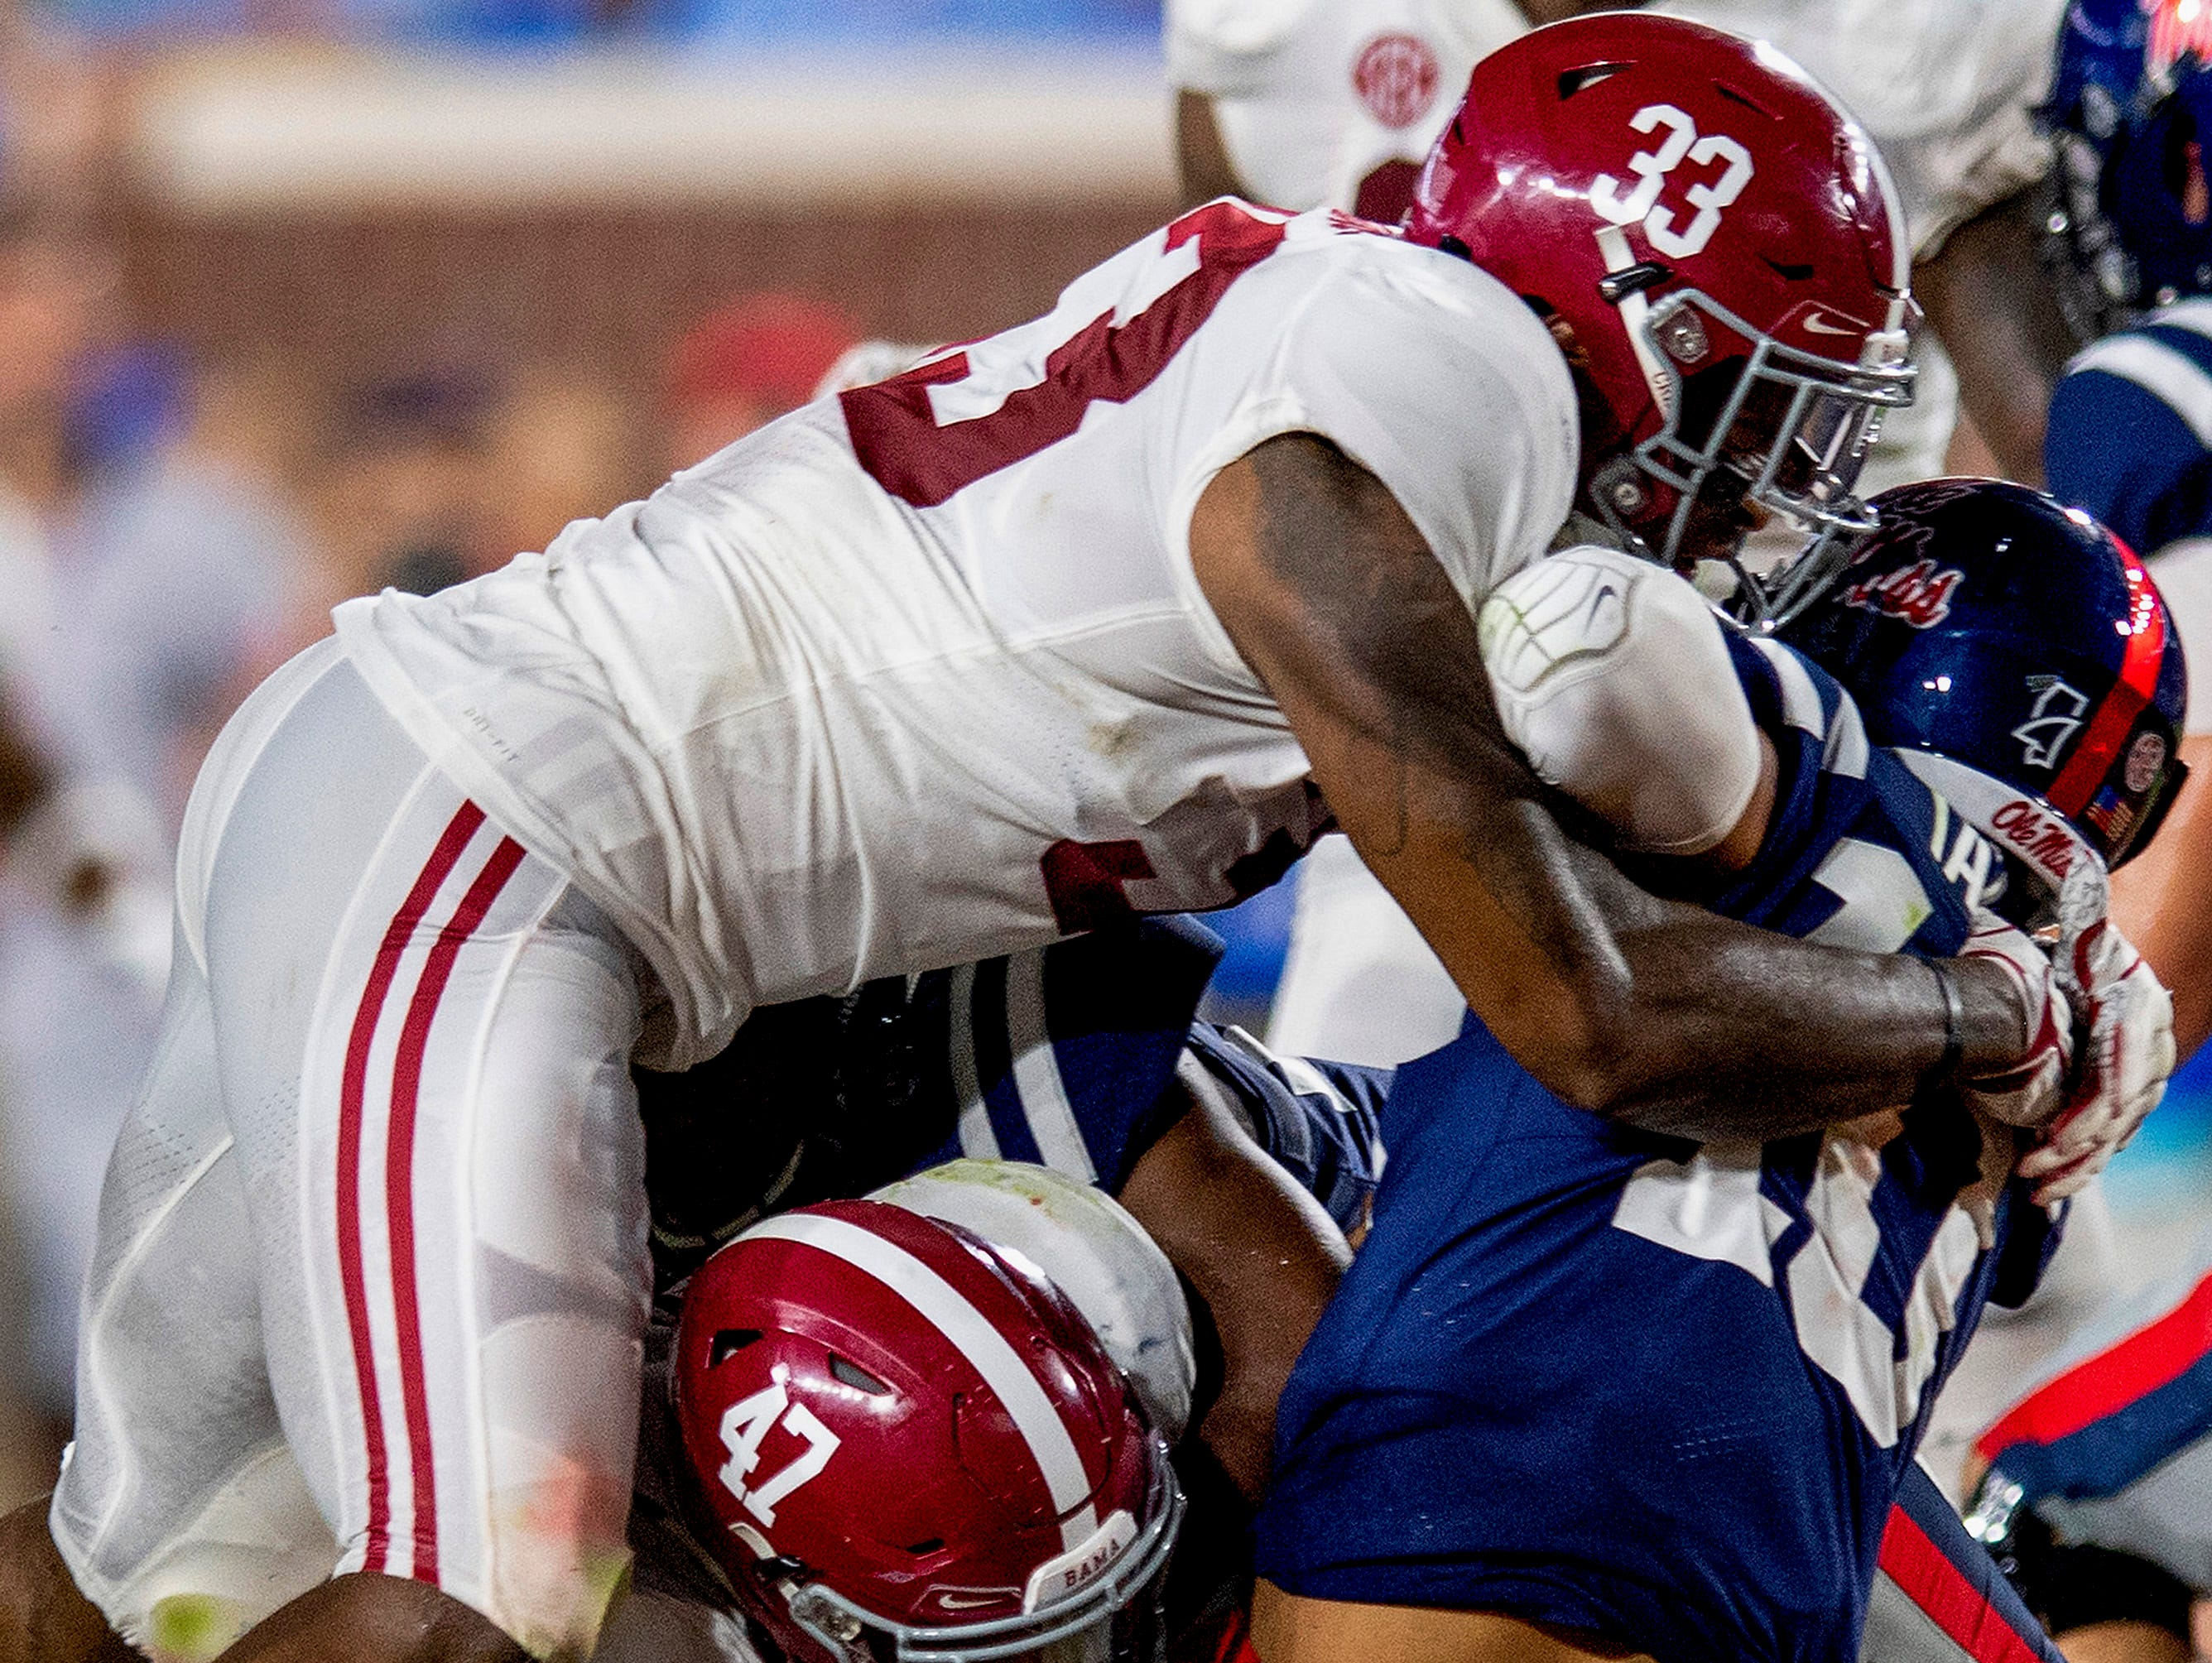 Alabama linebacker Christian Miller (47) and Alabama linebacker Anfernee Jennings (33) sack Ole Miss quarterback Jordan Ta'amu (10) on a fourth down play in first half action in Oxford, Ms., on Saturday September 15, 2018.